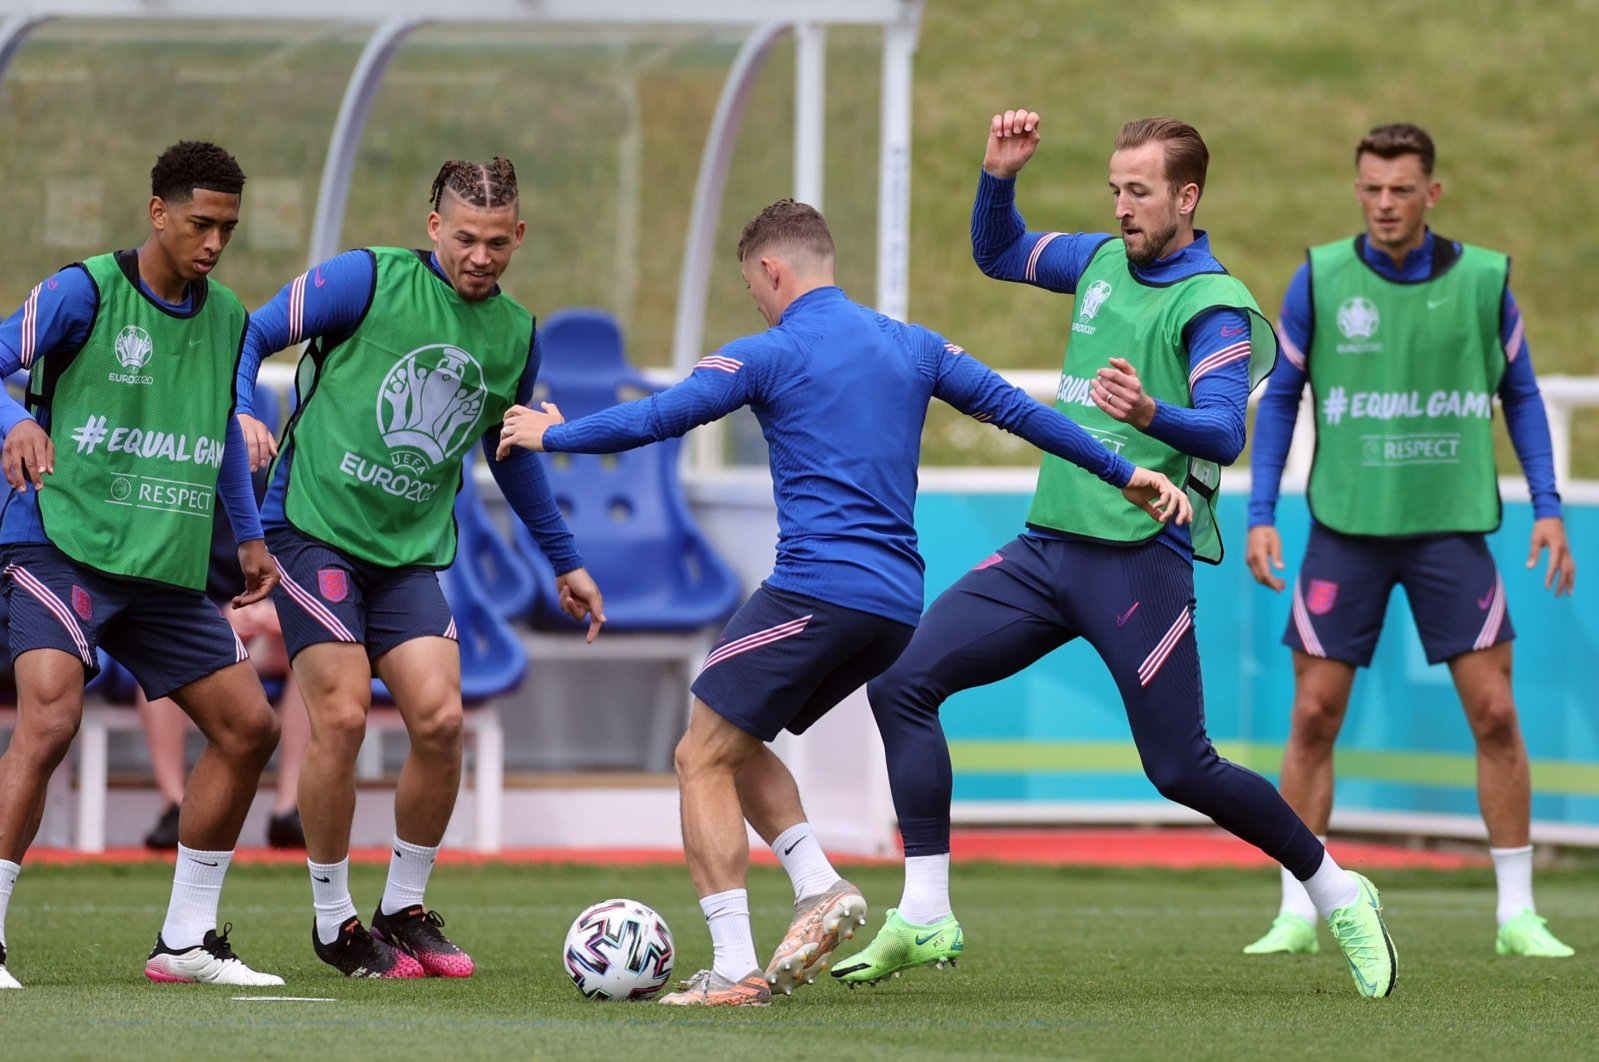 England's Harry Kane (2nd R) with teammates attend a training session at St. George's Park, Burton upon Trent, England, June 12, 2021. (Reuters Photo)